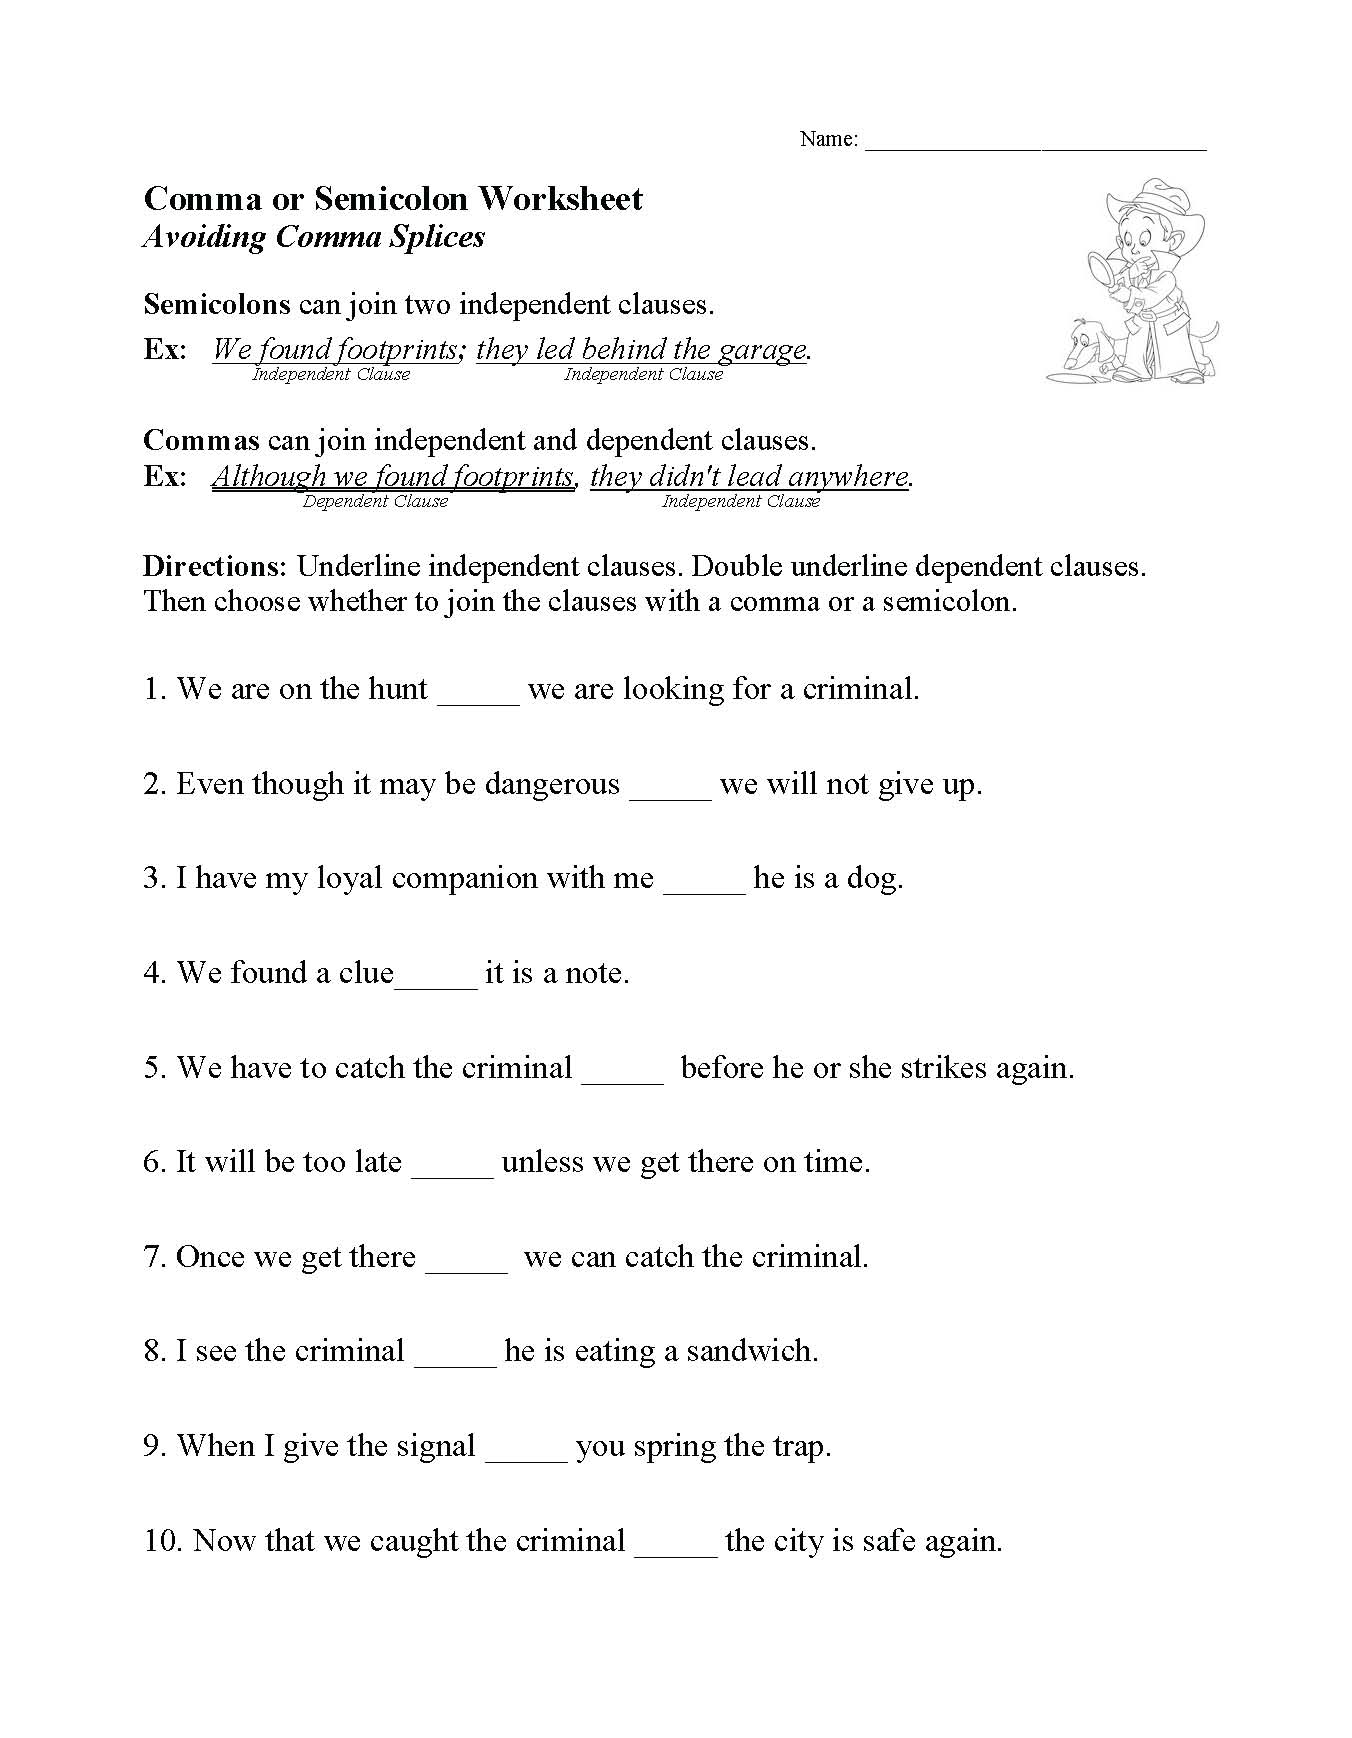 Comma Or Semicolon Worksheet